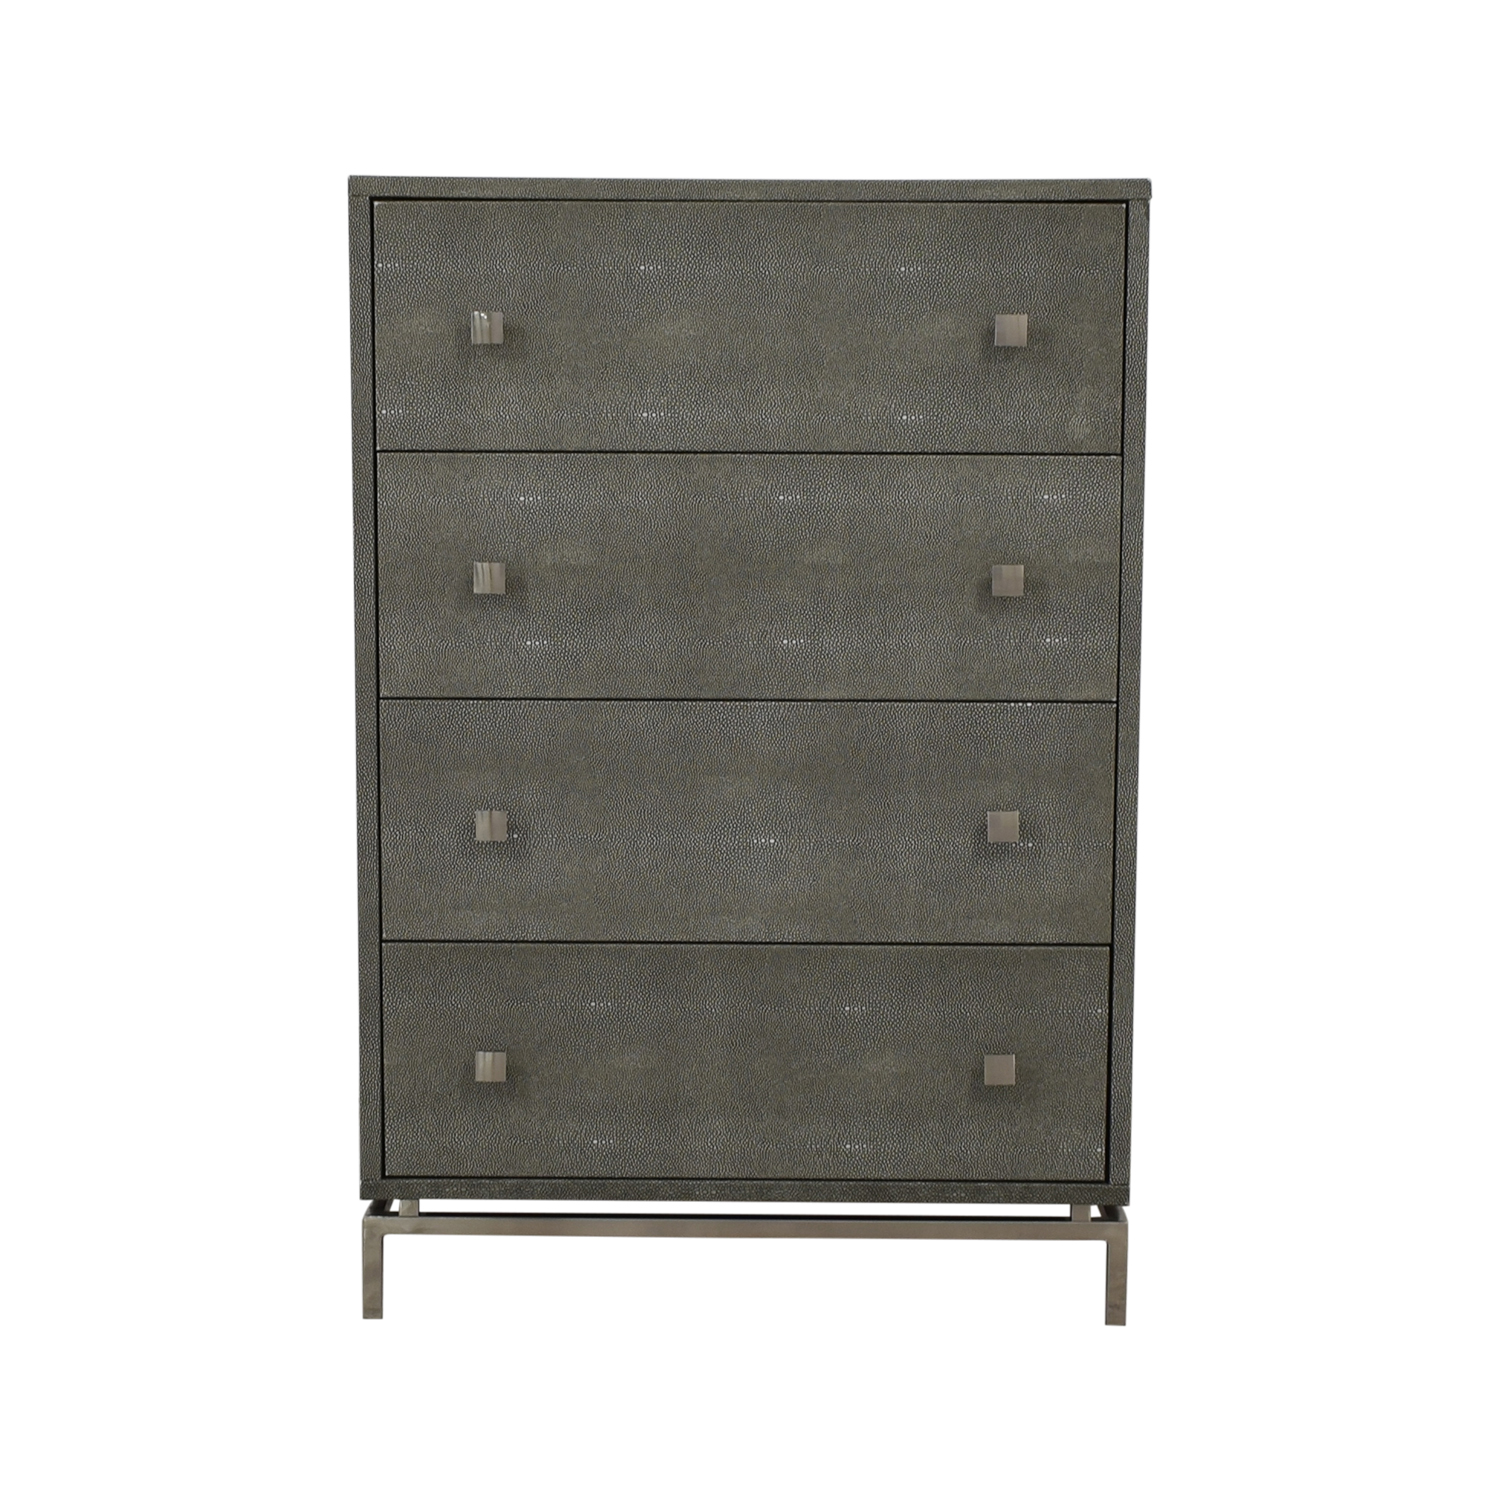 shop CB2 Shagreen Embossed Tall Chest CB2 Dressers